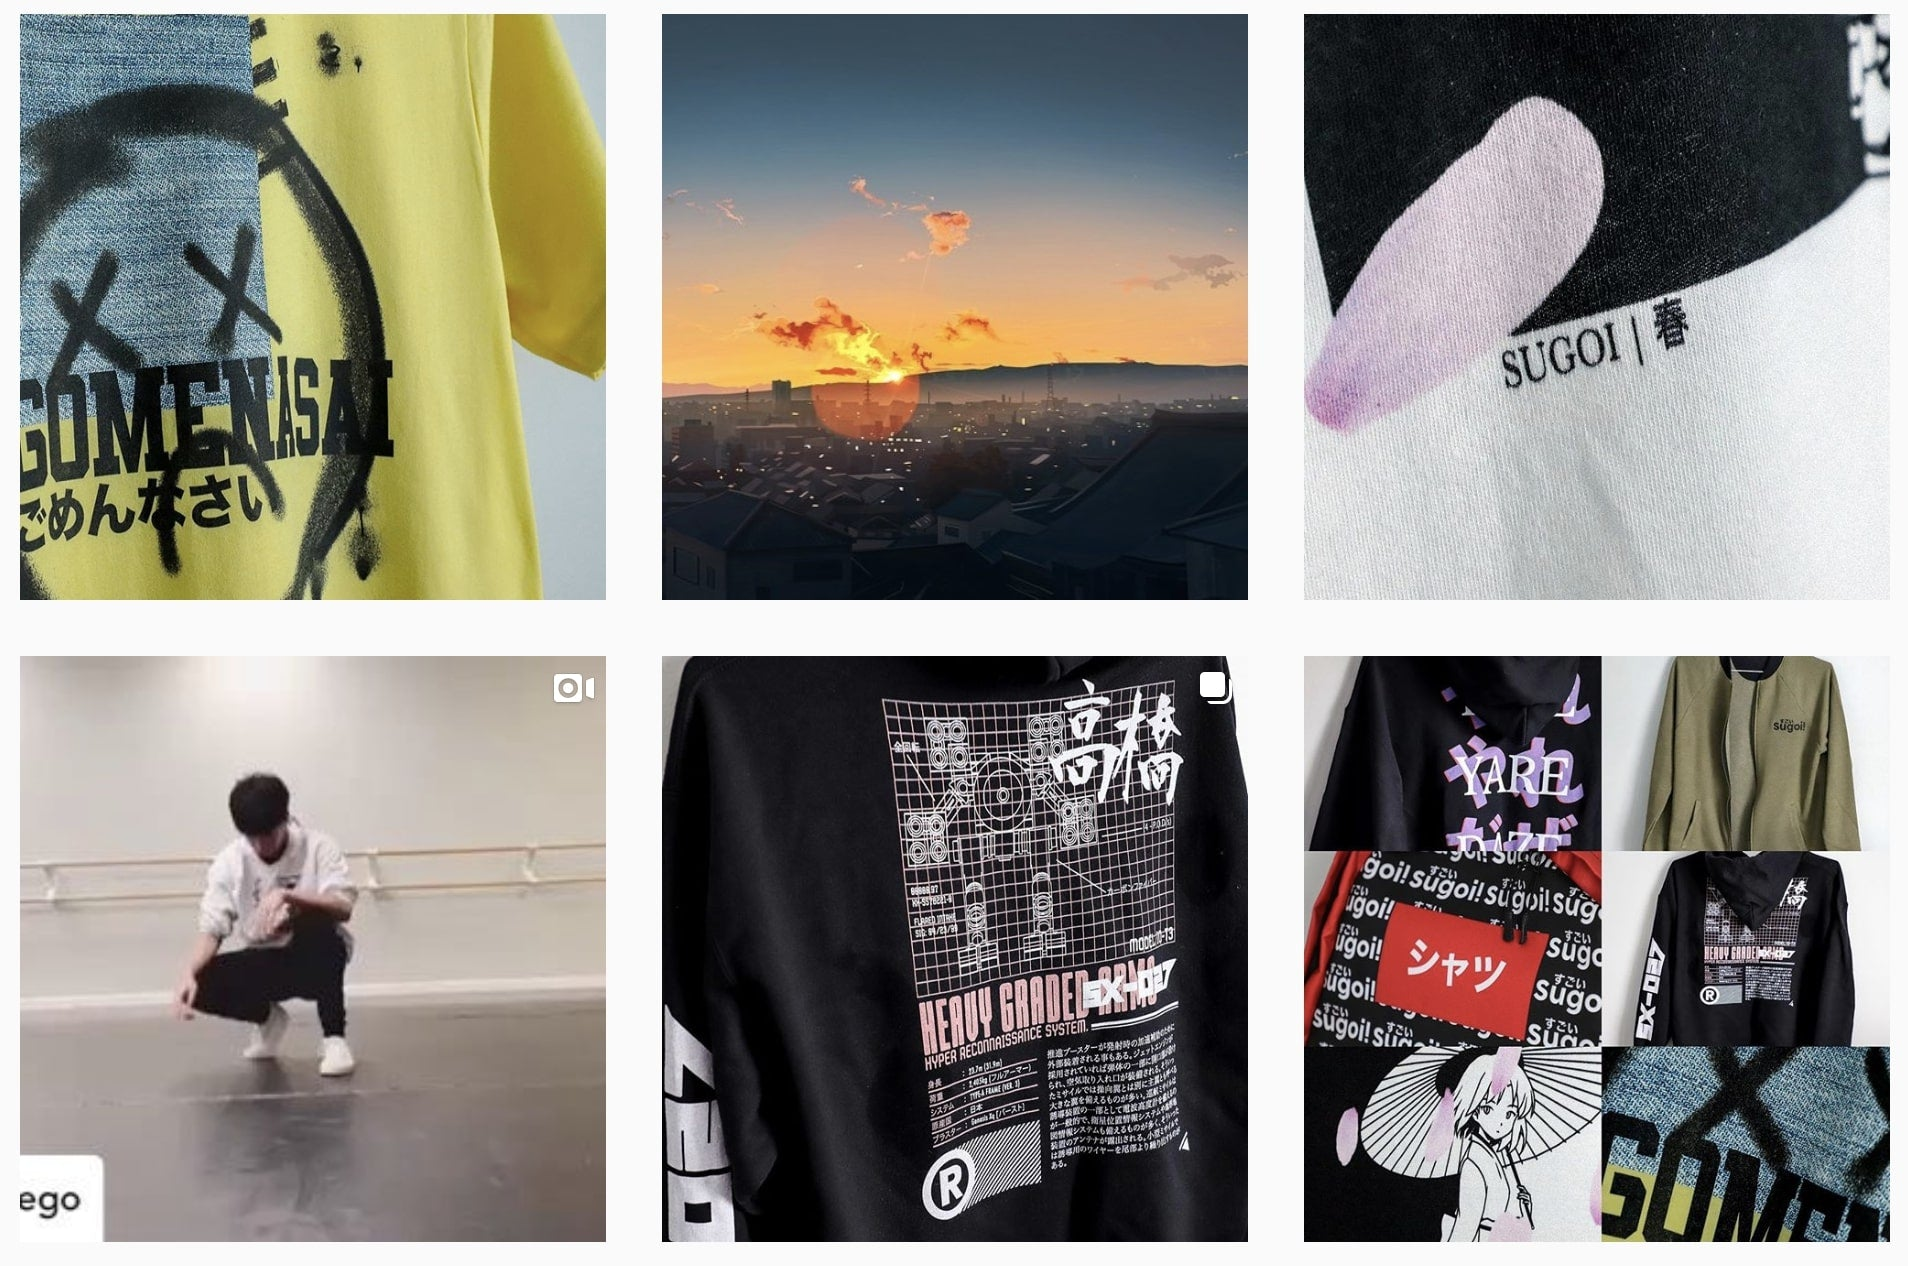 7b7ac80e557 sugoi shirts instagram as an example of building a lifestyle brand